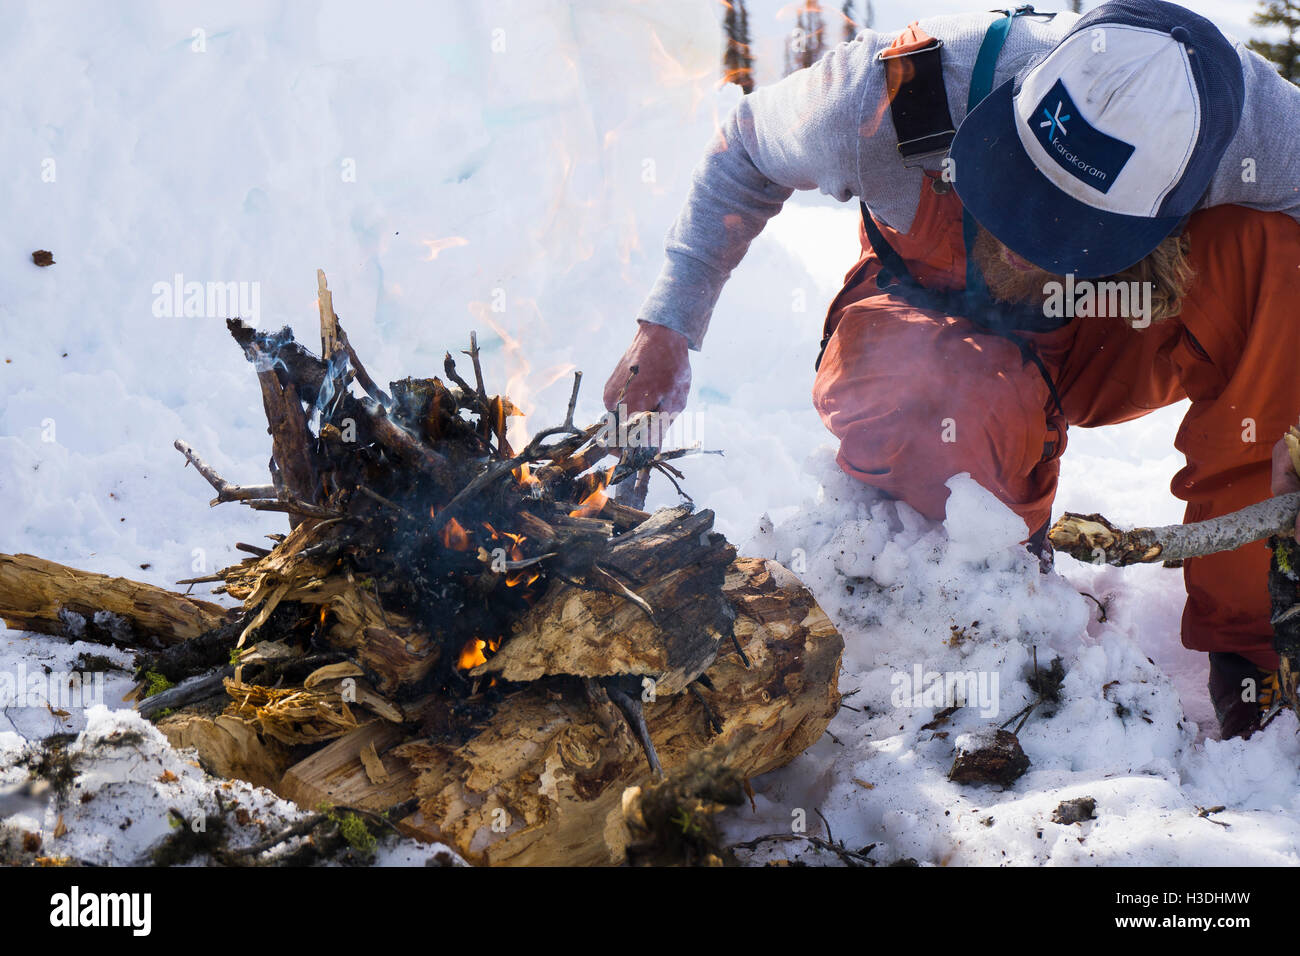 Building a fire during the winter in the backcountry - Stock Image